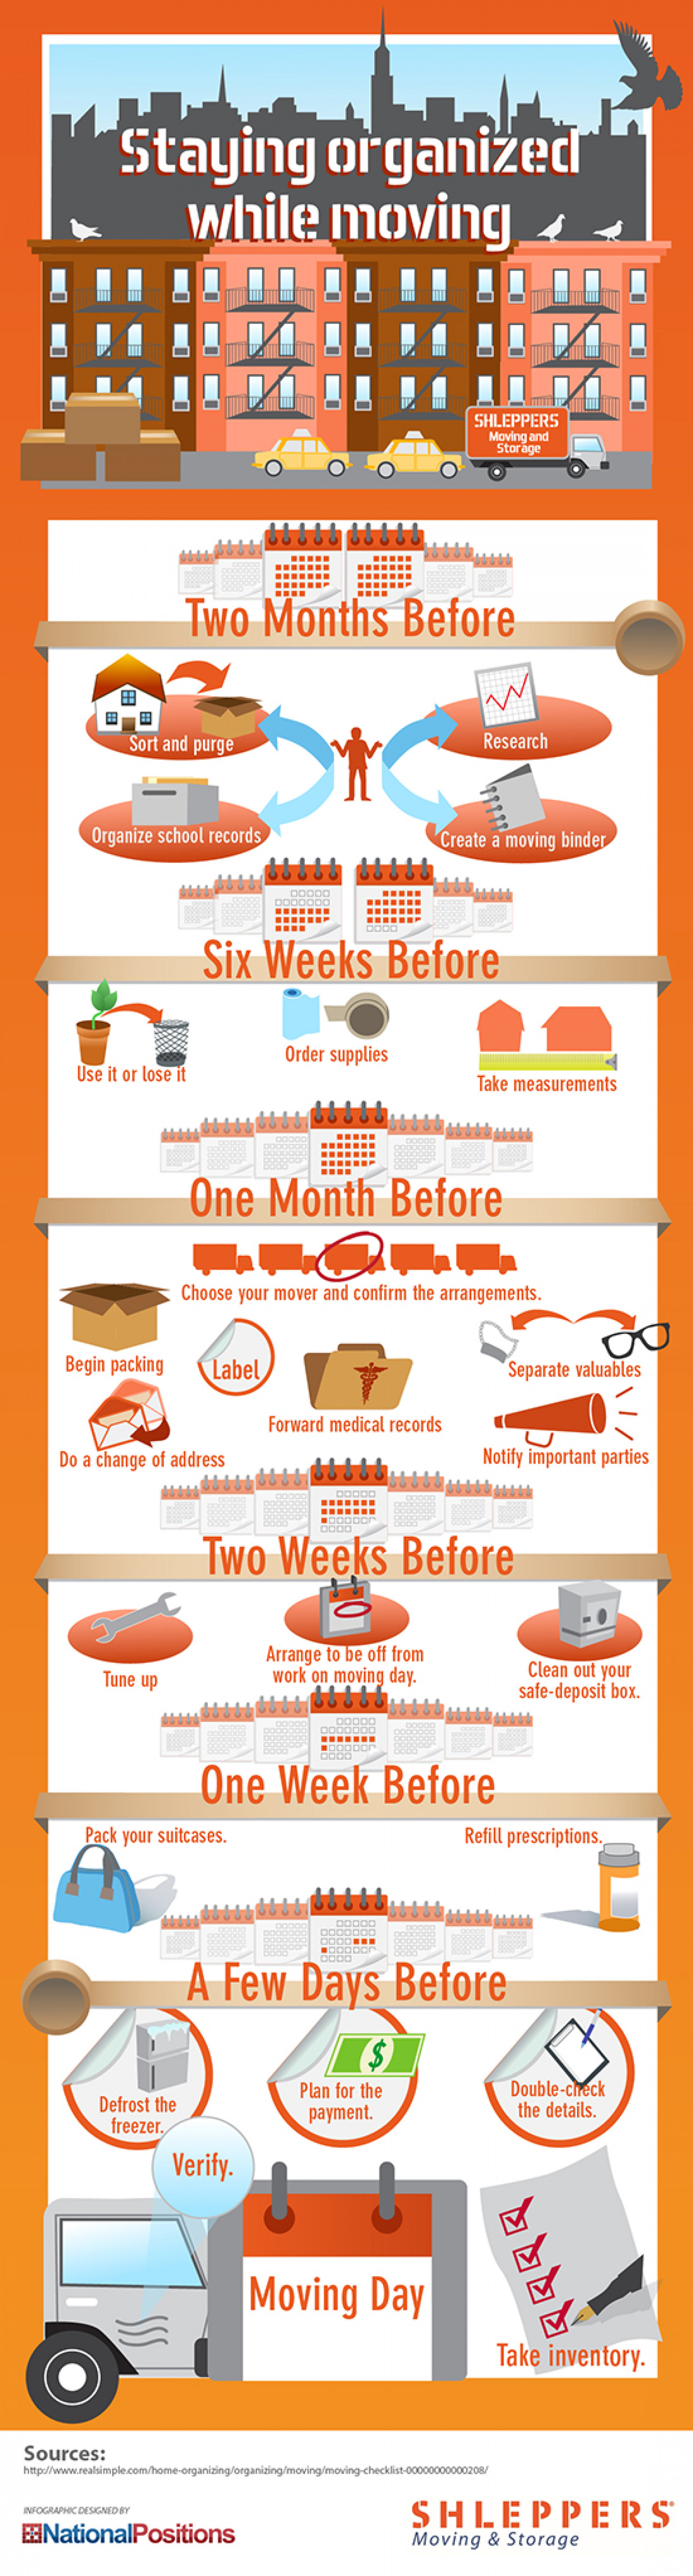 Staying Organized While Moving Infographic